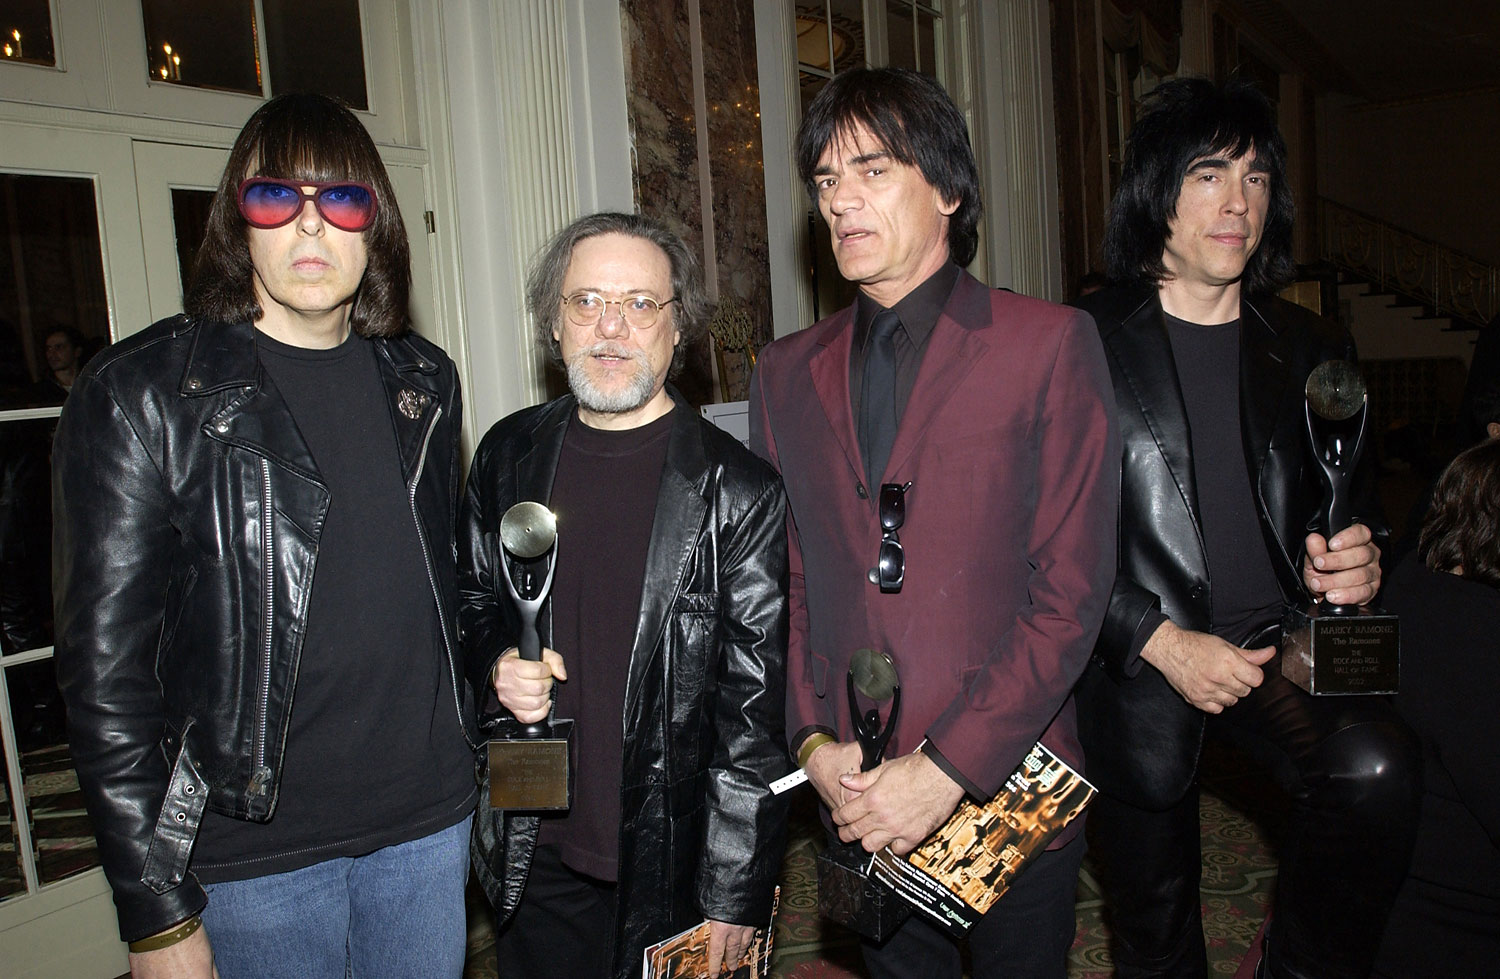 From left to right, Johnny Ramone, Tommy Ramone, Dee Dee Ramone and Marky Ramone following The Ramones induction to the Rock Hall of Fame, March 18, 2002.